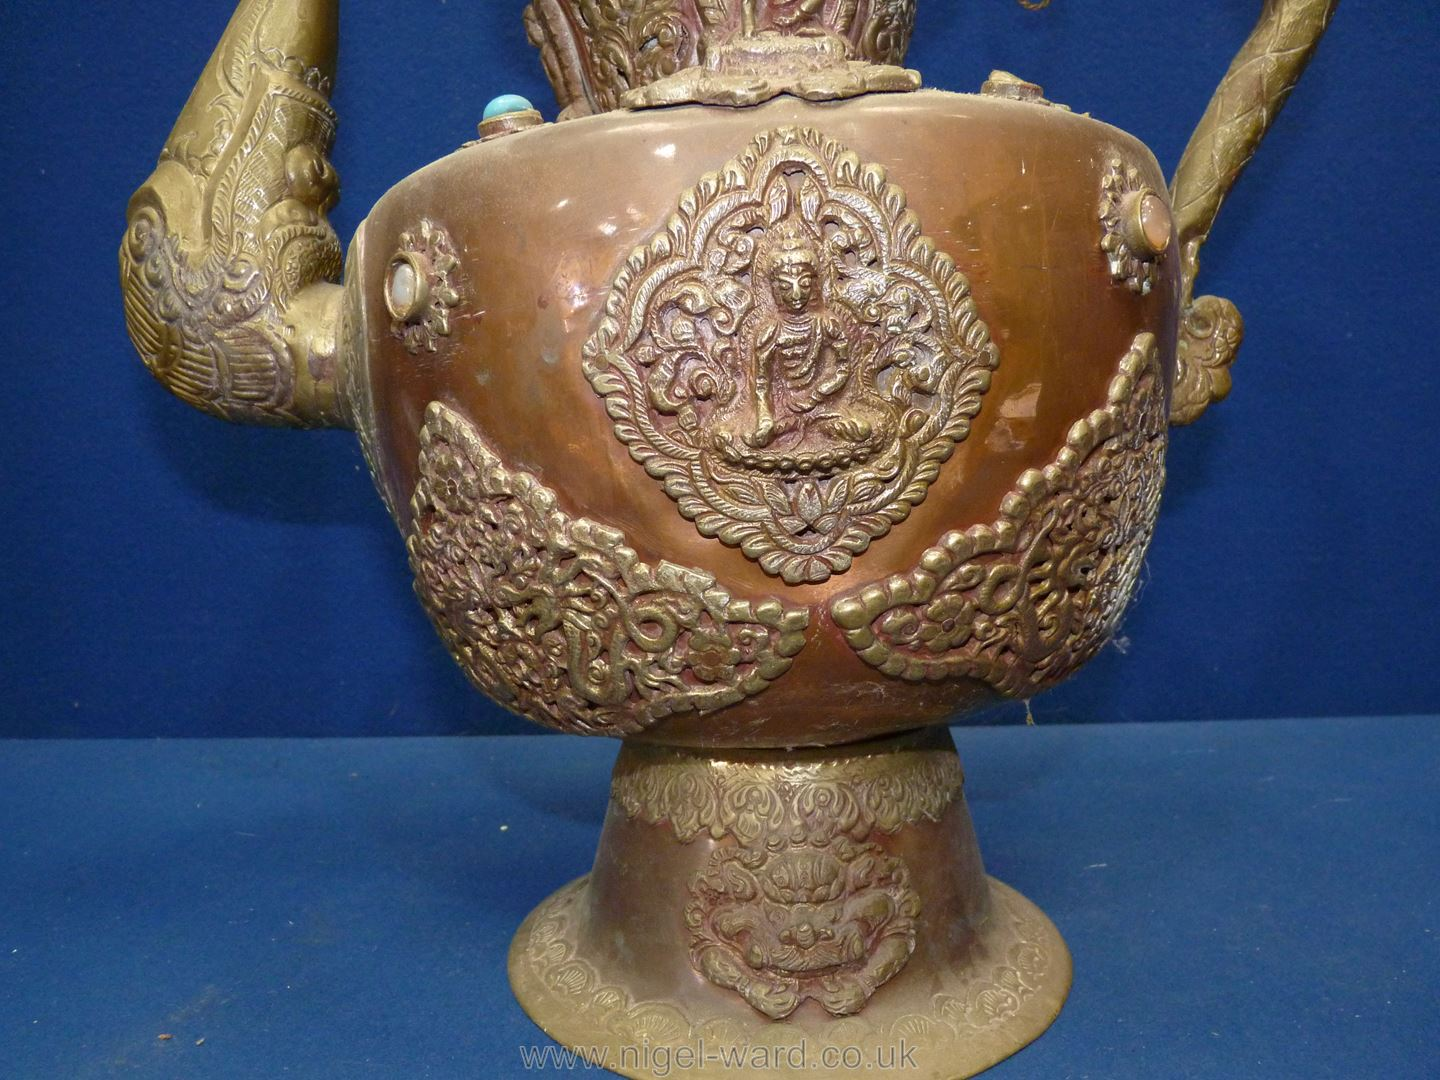 A Tibetan copper and brass ceremonial Dragon ewer with dragon handles and spout, - Image 2 of 9